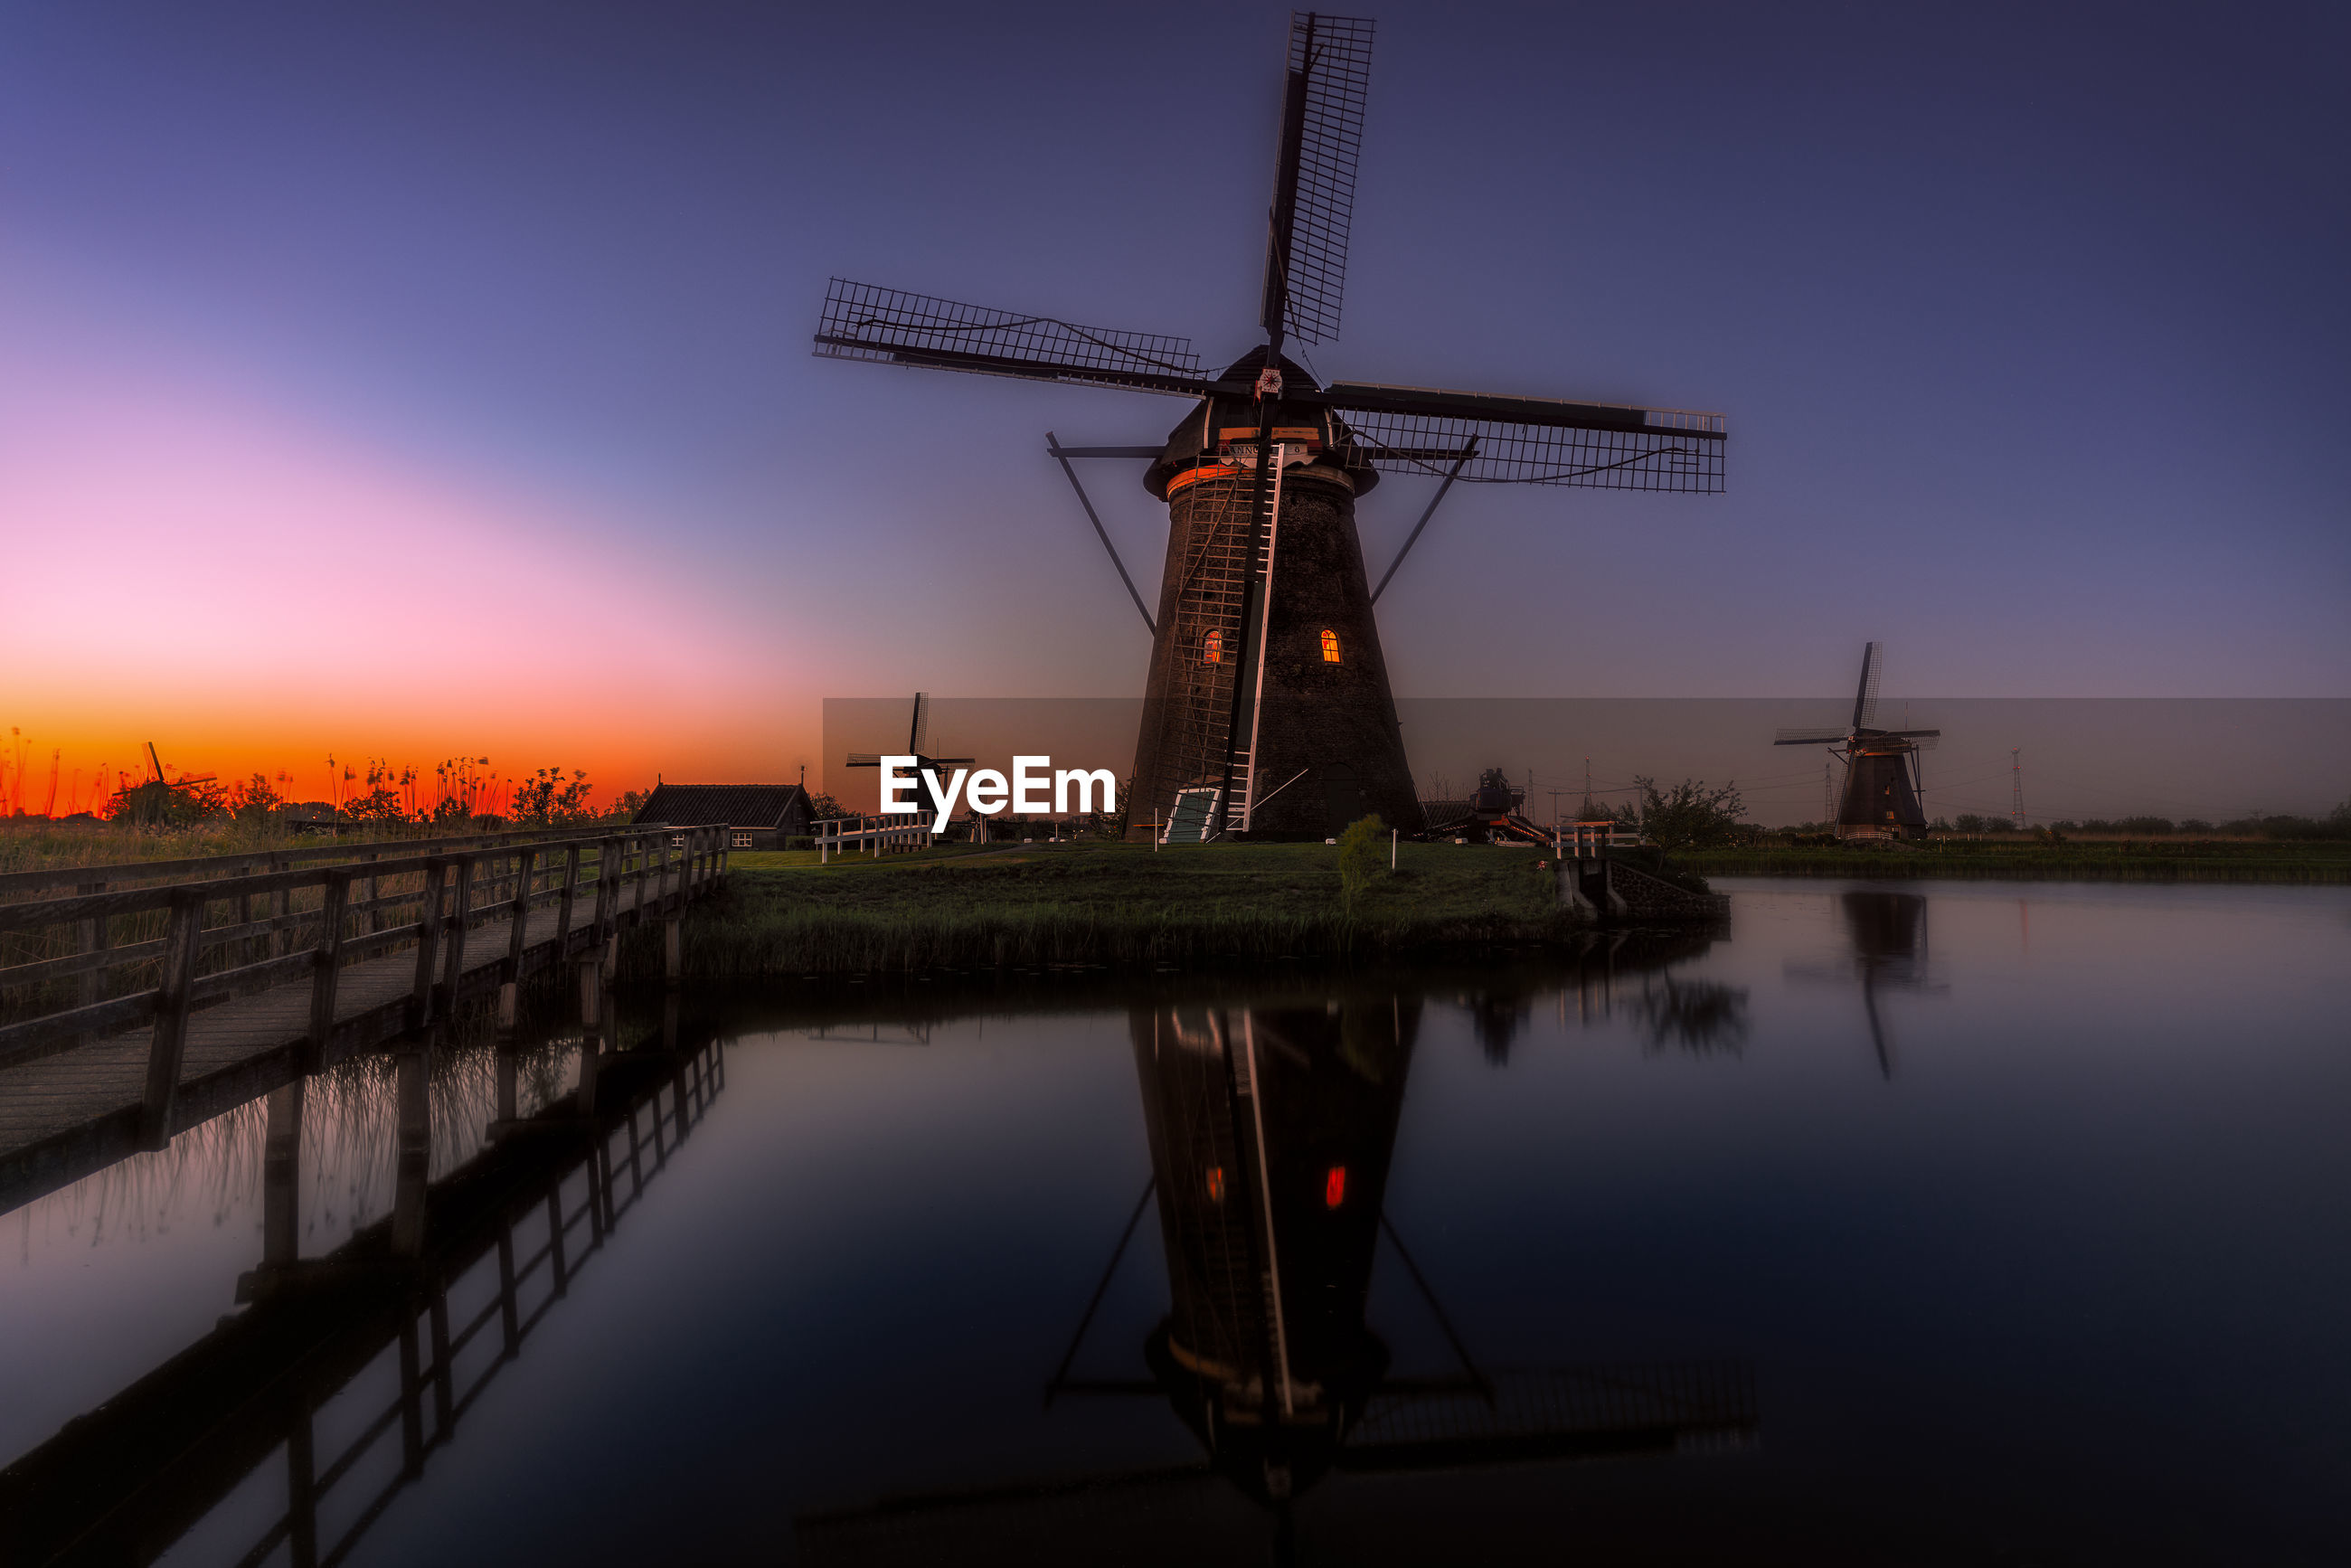 Traditional windmill by lake against dramatic sky during sunset